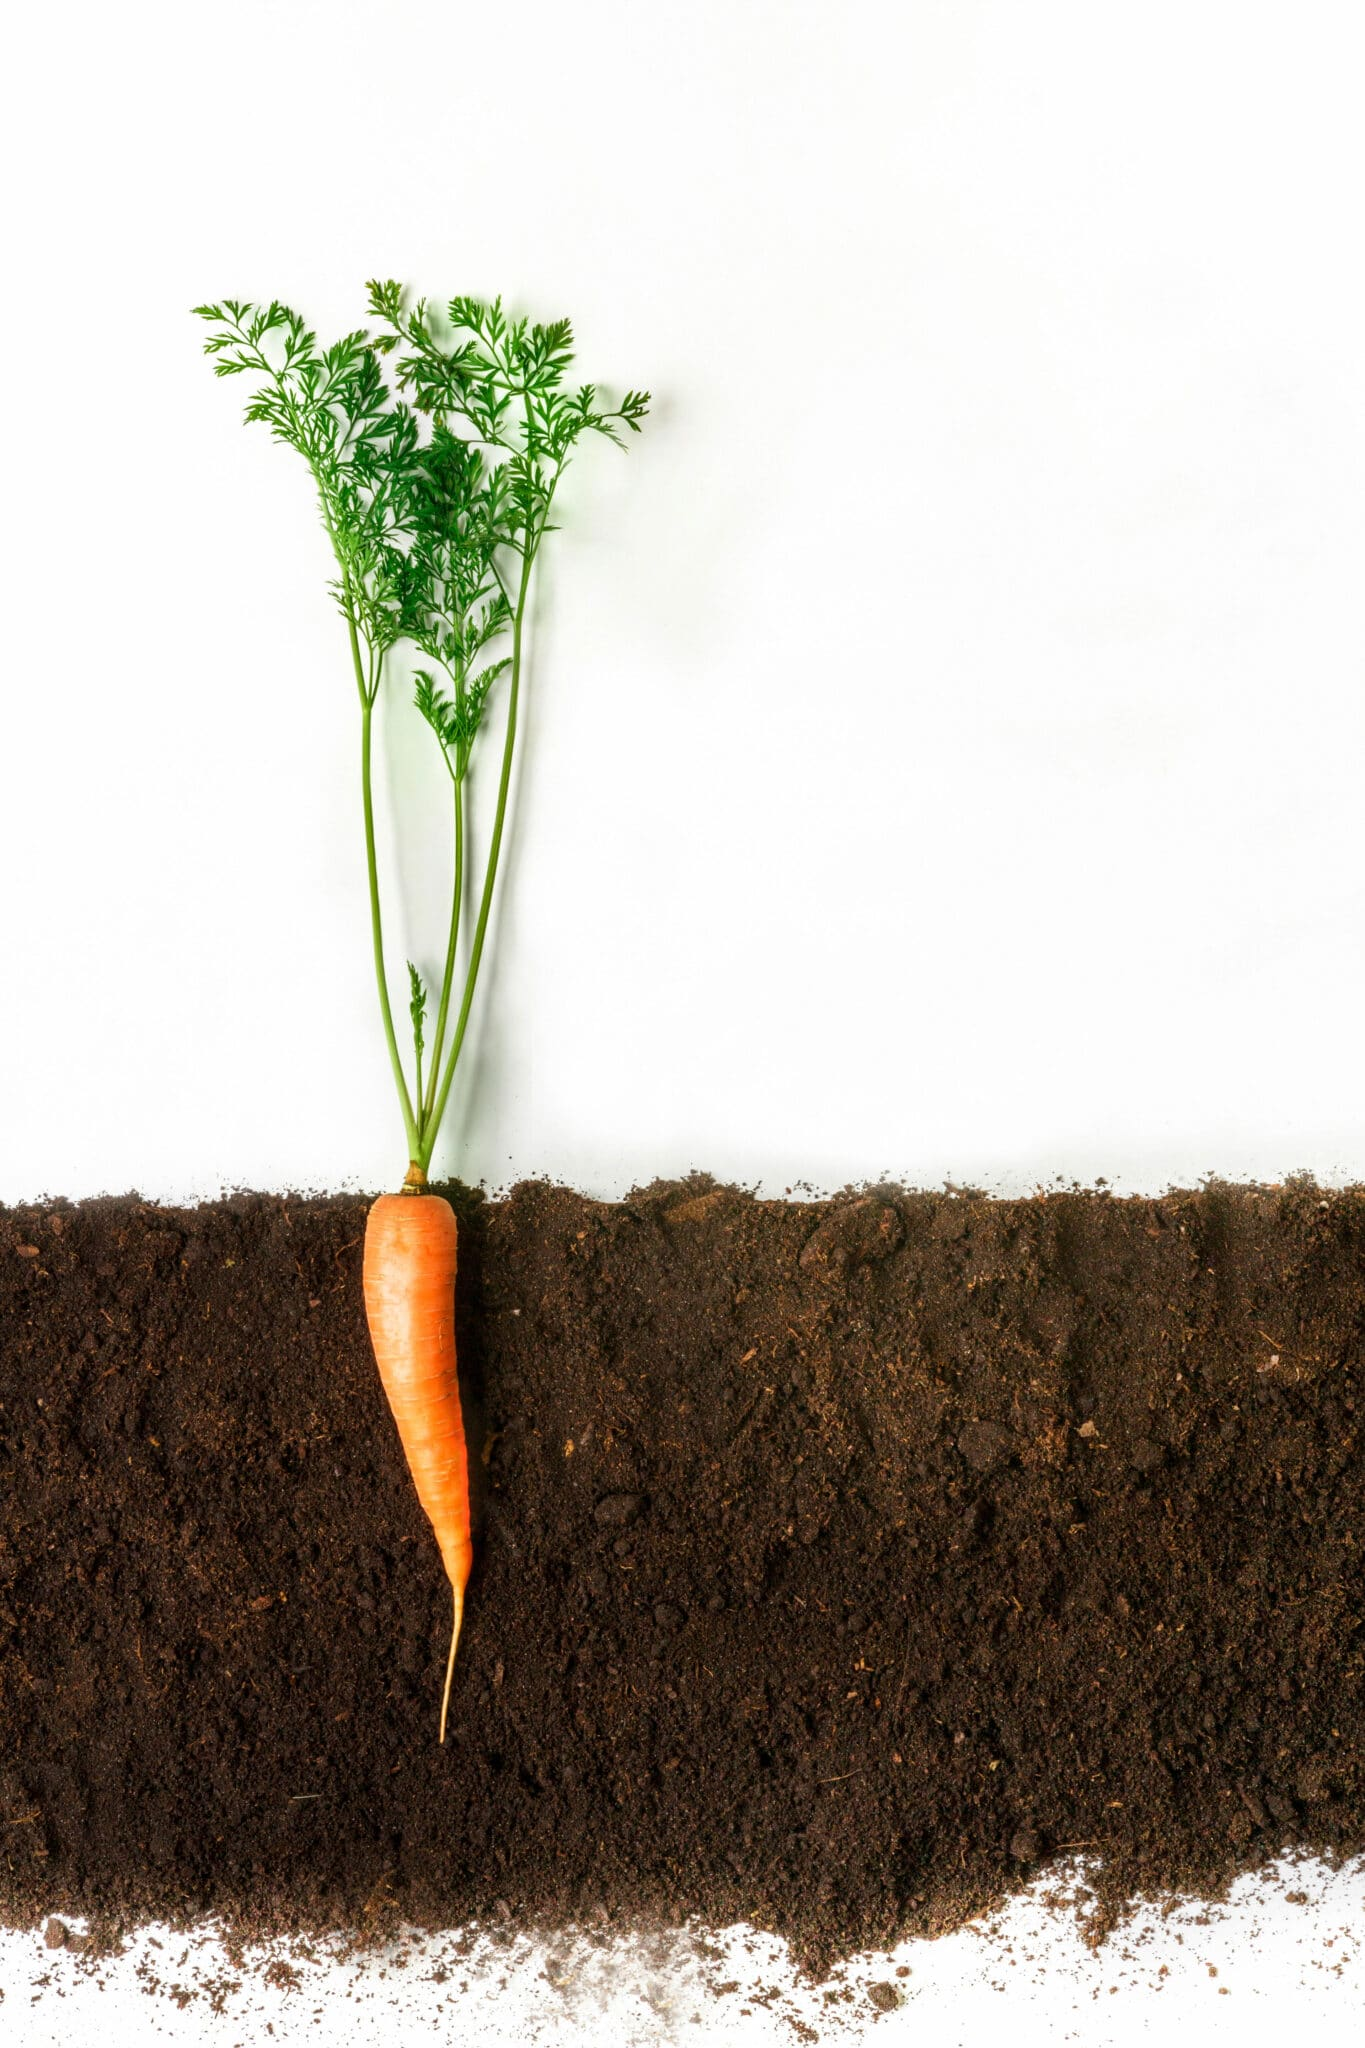 A cross-section showing how deep a carrot will grow in a container.